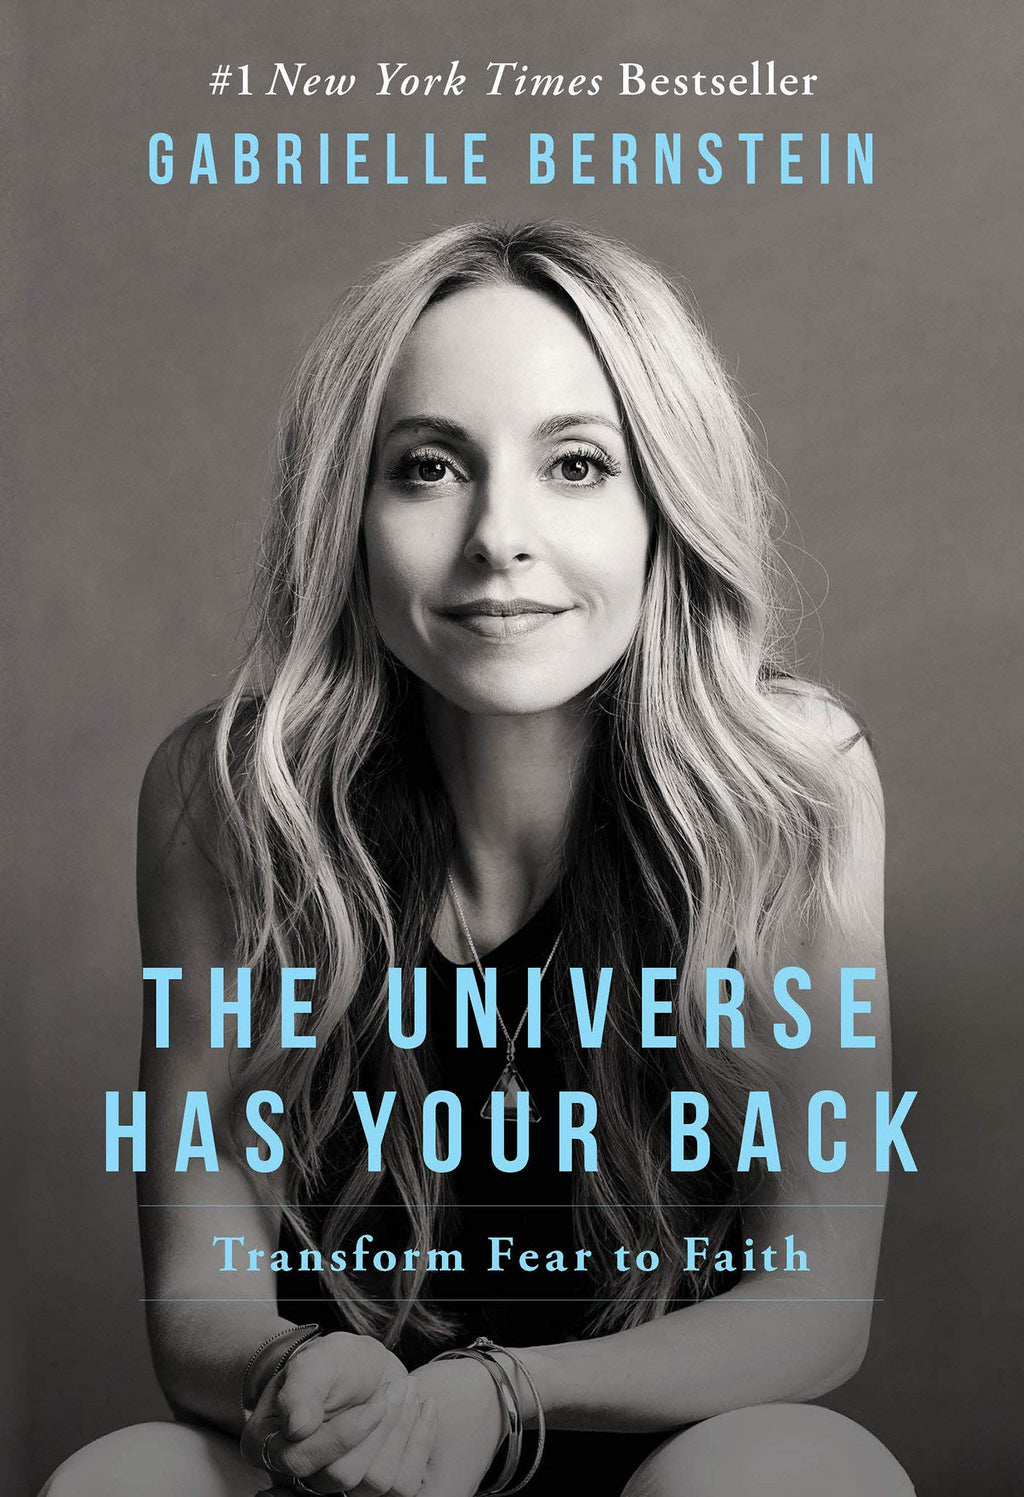 Universe Has Your Back by Gabrielle Bernstein